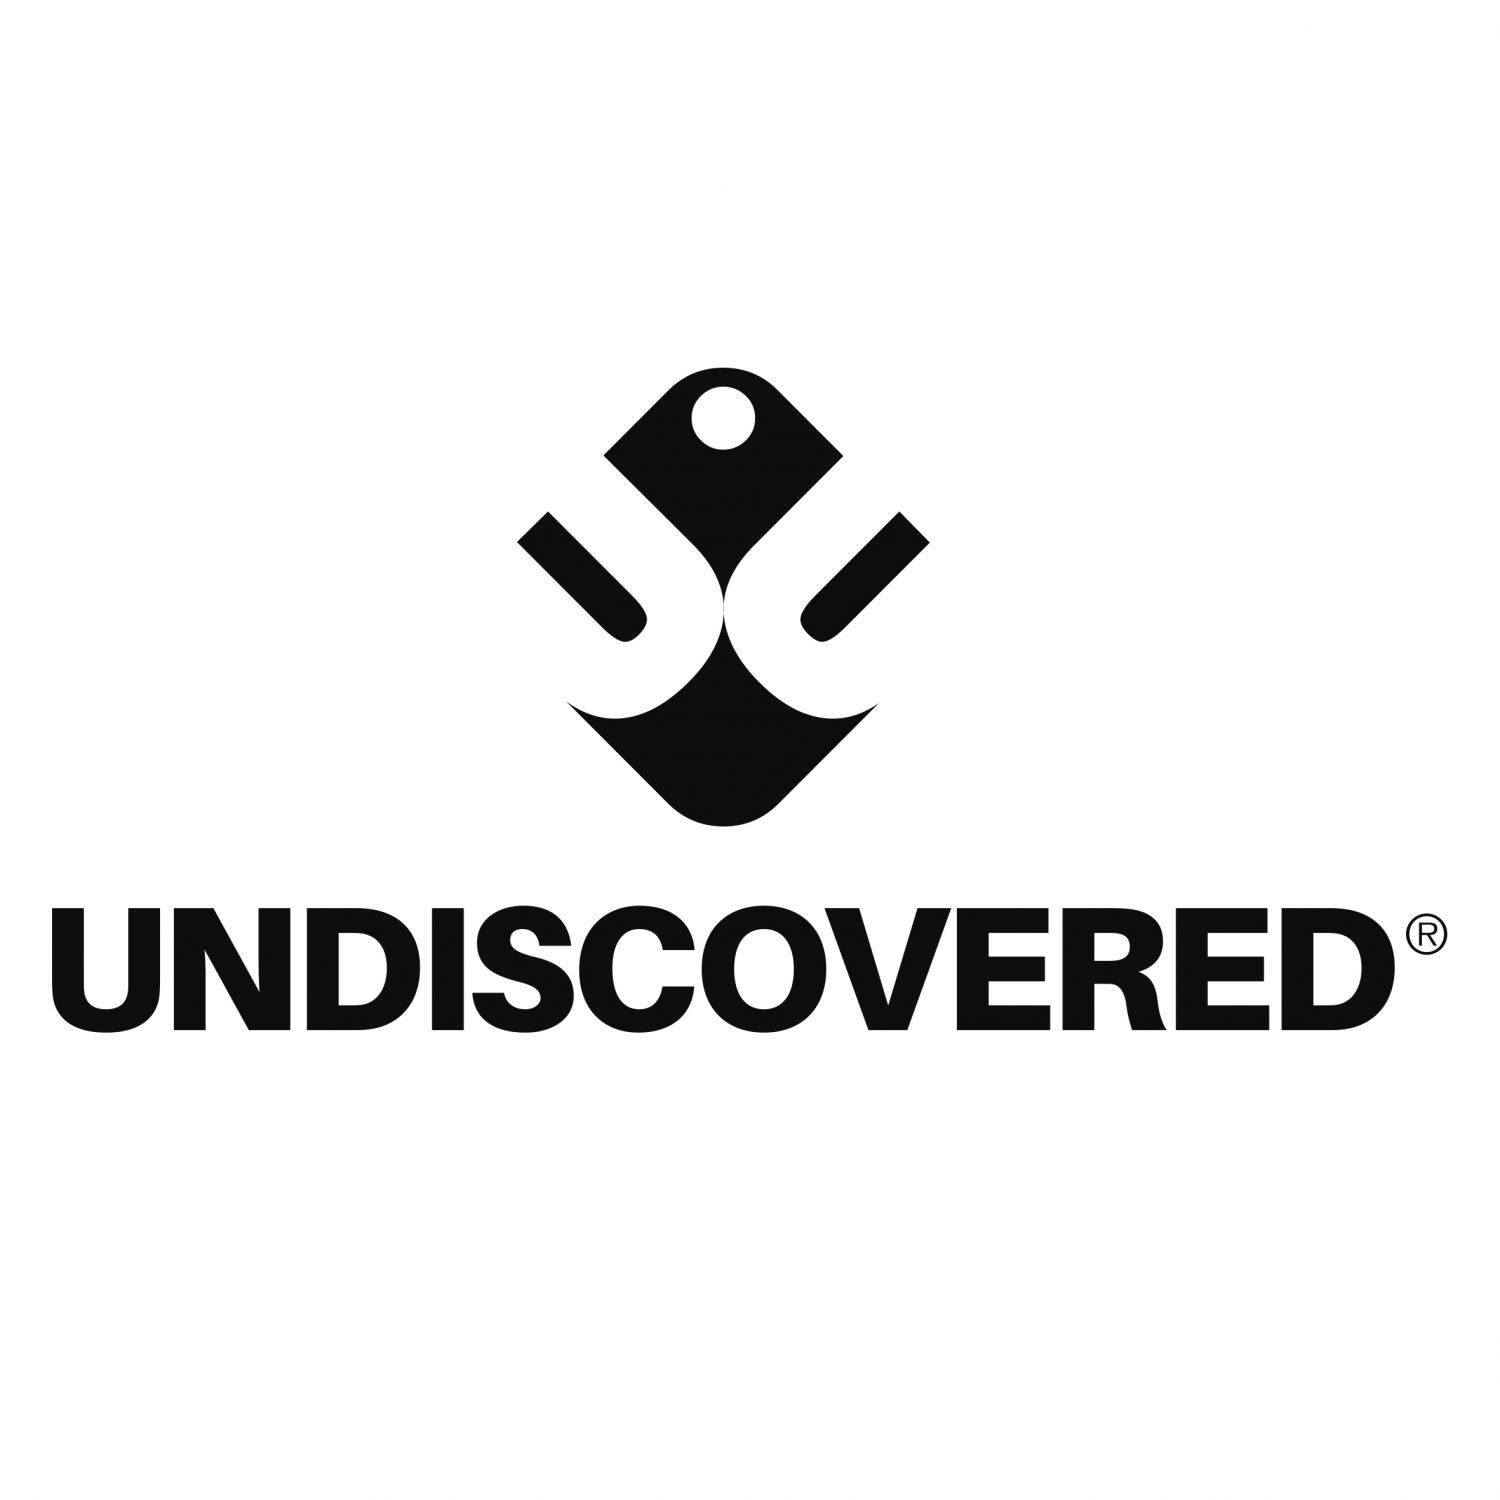 Undiscovered logo 2015 (High Resol)